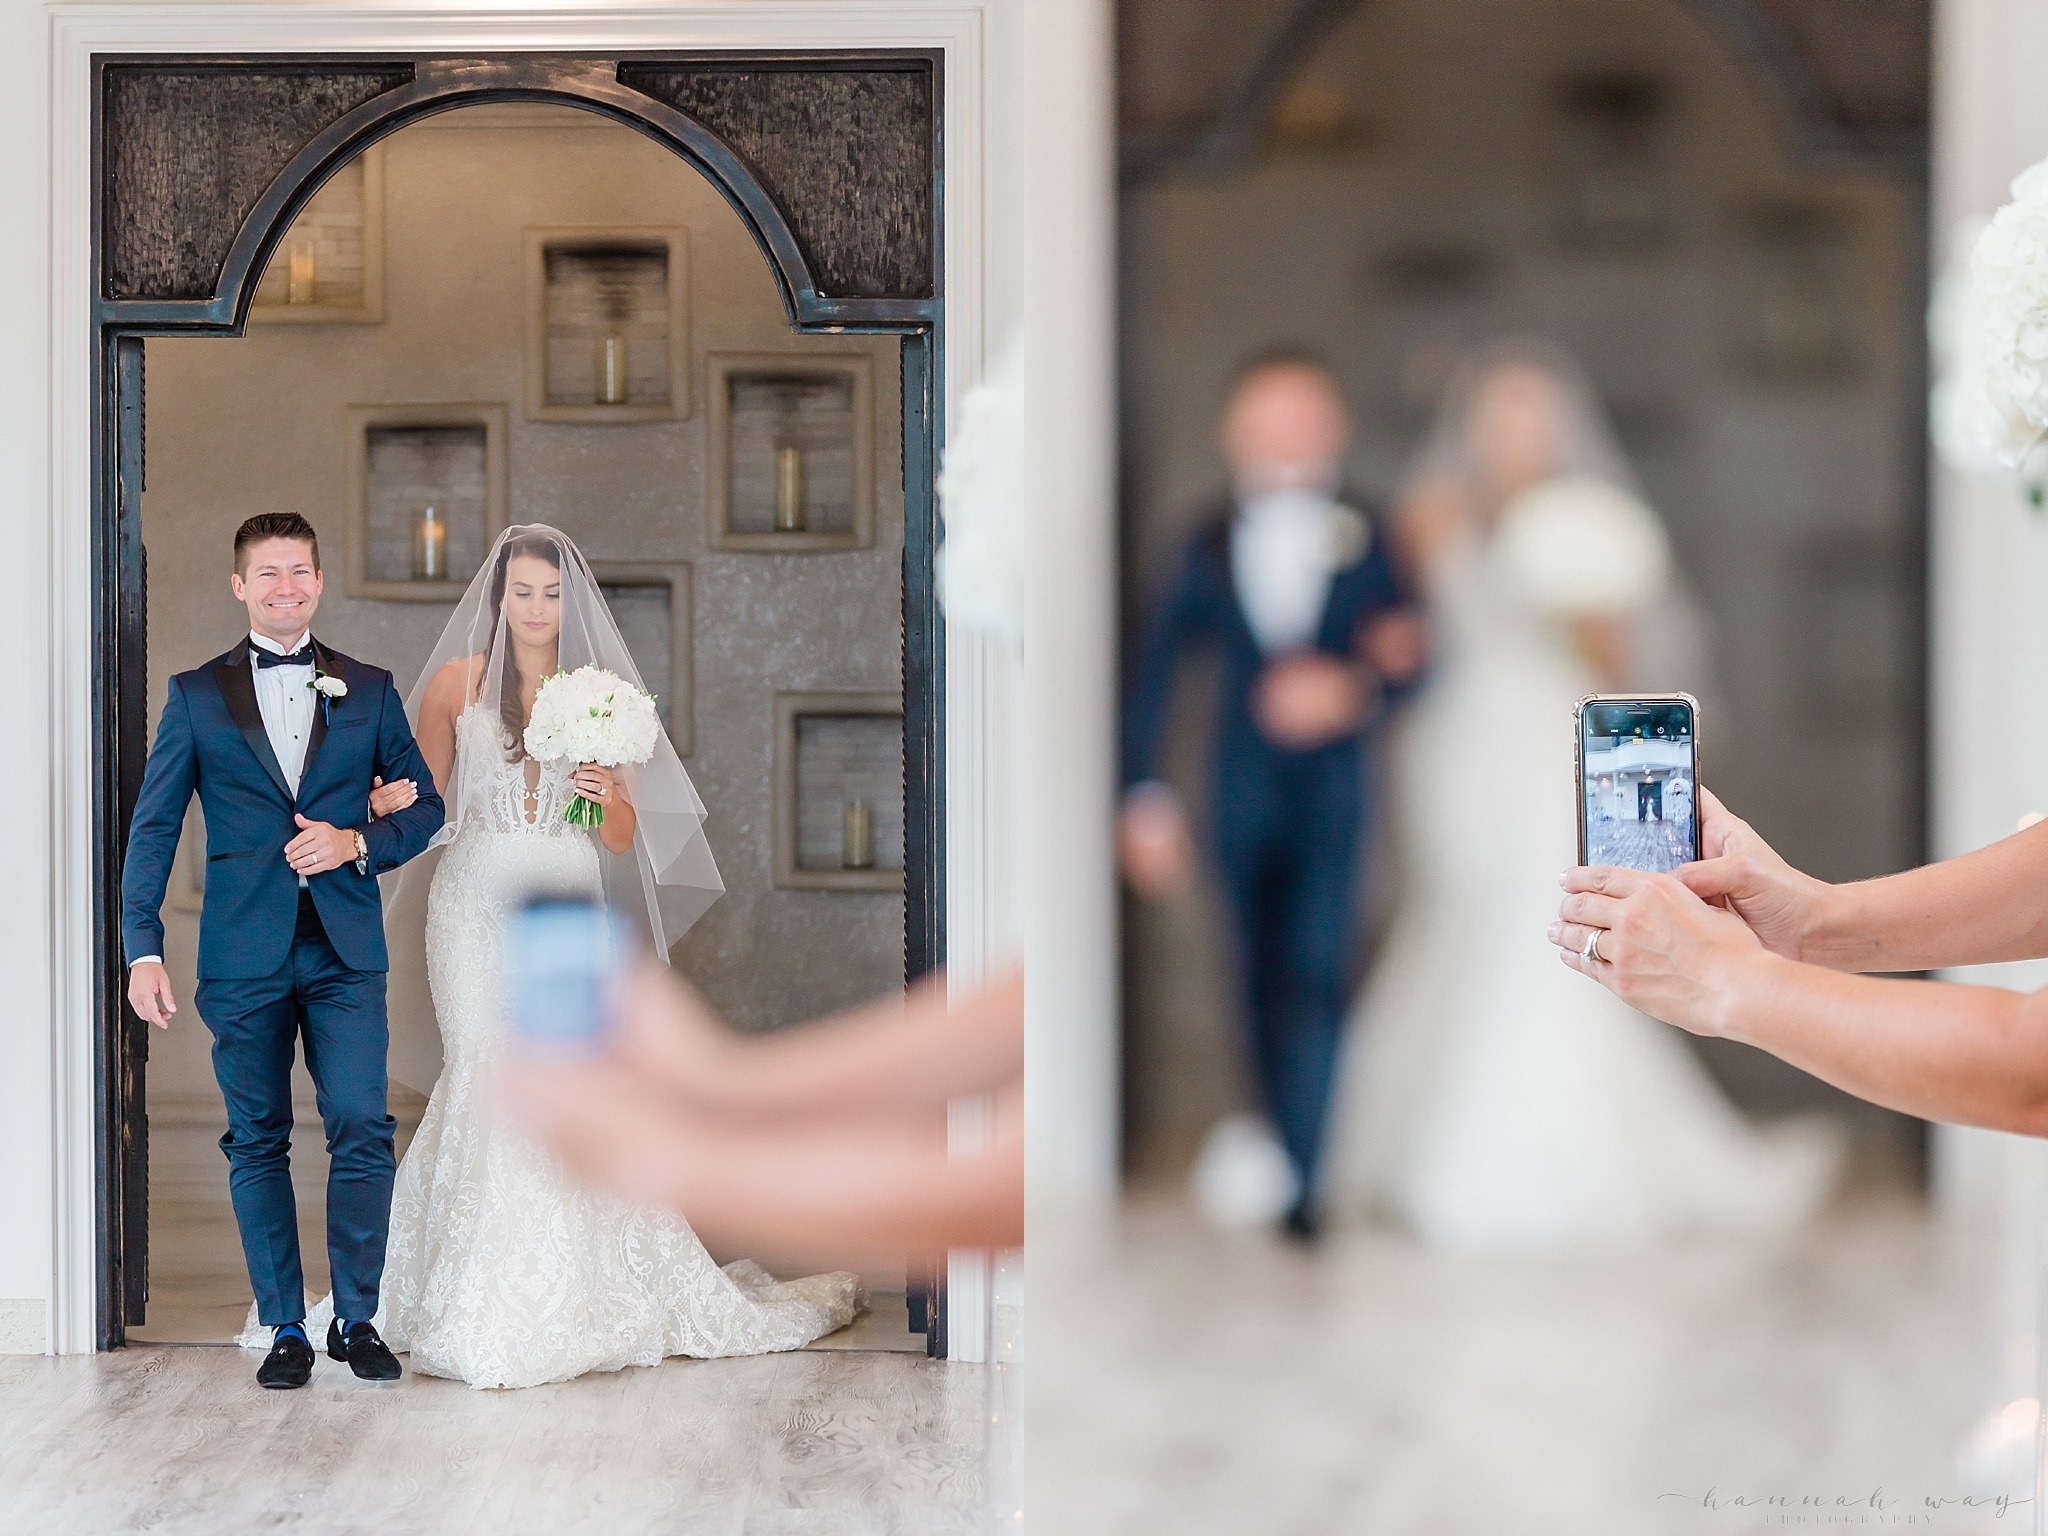 Official Wedding Photos.Guest Ruins Official Wedding Photo With Her Iphone